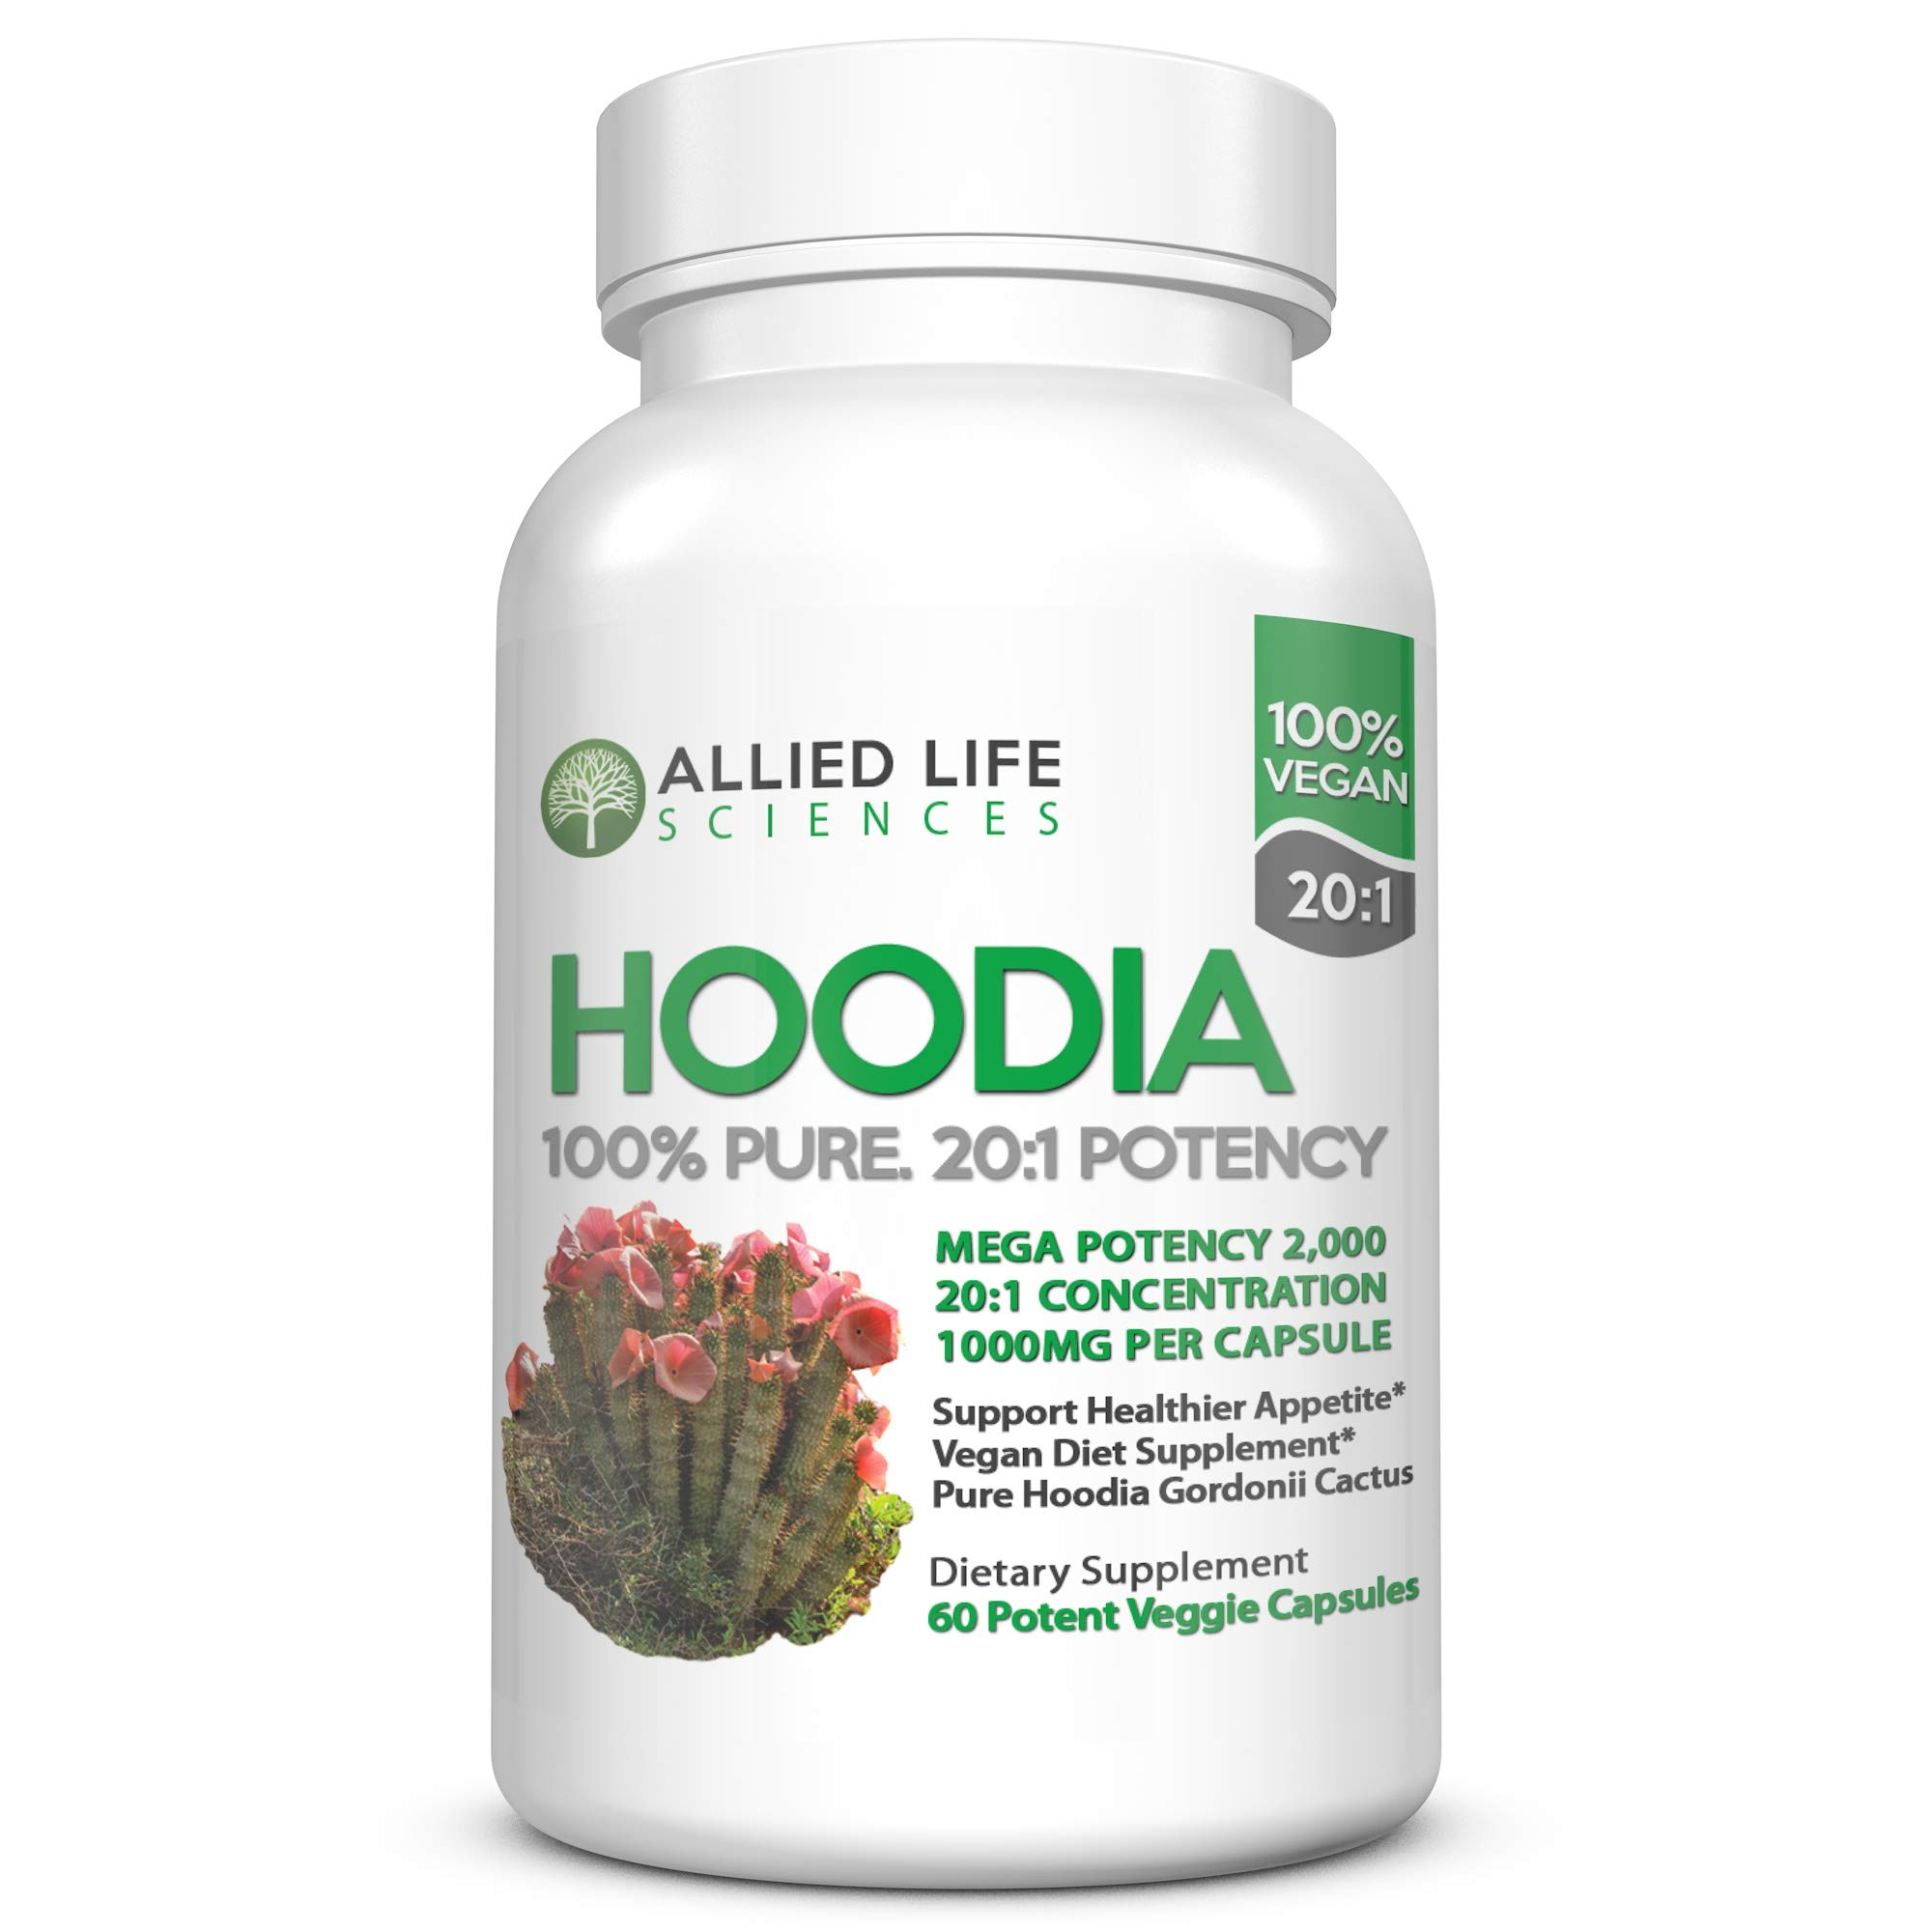 Hoodia Gordonii - Natural Vegan Appetite Suppressant Pills. 20:1 Potency is 20X Stronger Than Raw Hoodia. Stimulant Free Unlike Most Diet Pills & Weight Loss Products